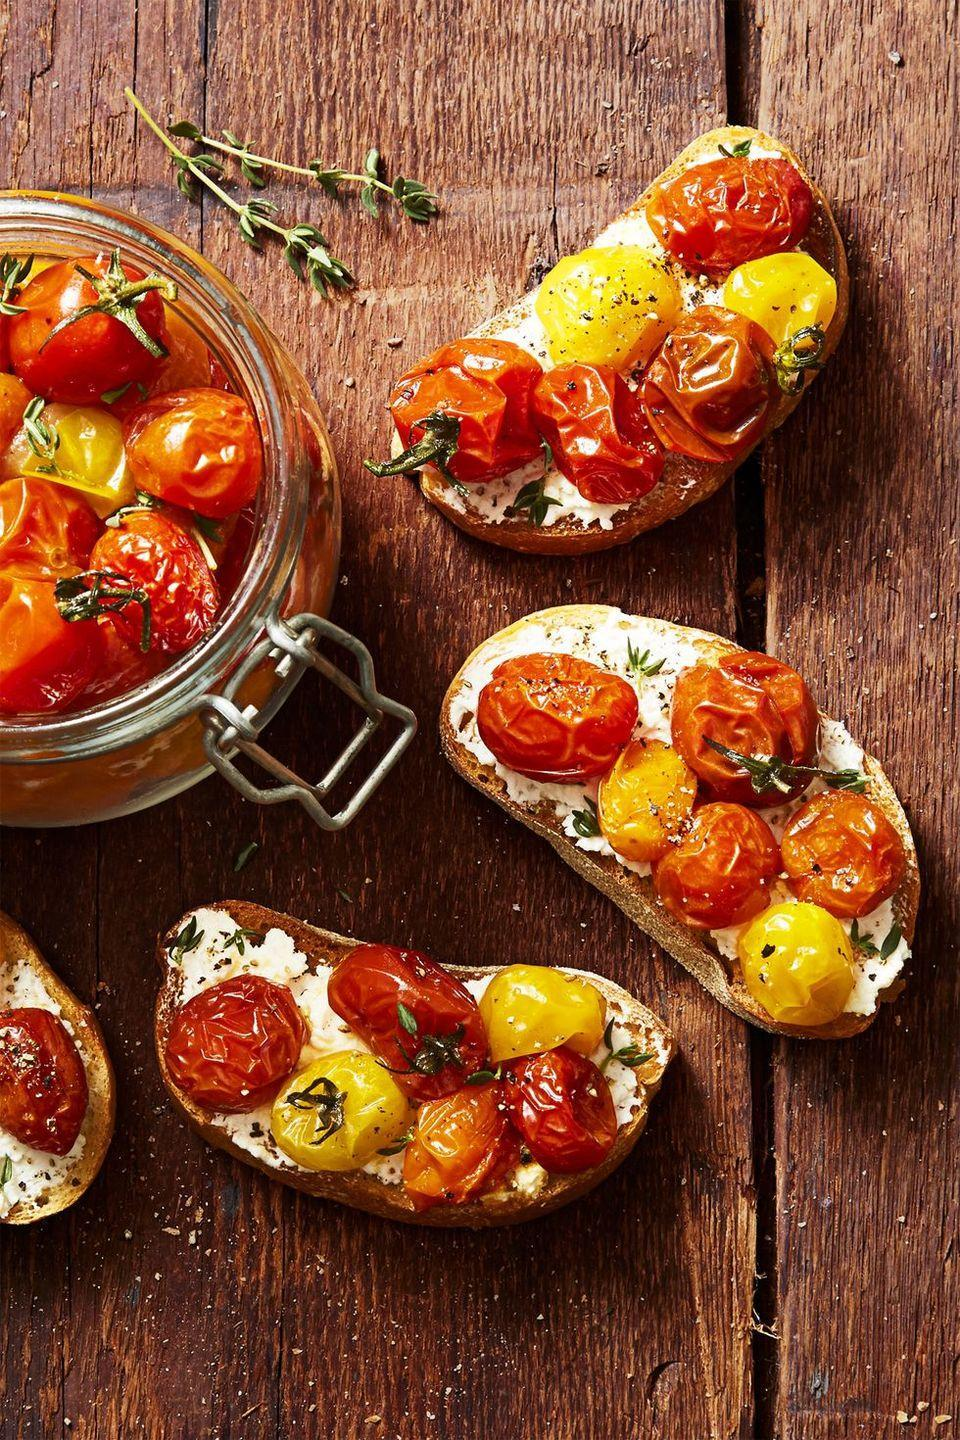 """<p>These bruschetta apps look super swanky, but all they require are a few roast veggies. </p><p><em><a href=""""https://www.goodhousekeeping.com/food-recipes/a45216/cherry-tomato-confit-recipe/"""" rel=""""nofollow noopener"""" target=""""_blank"""" data-ylk=""""slk:Get the recipe for Cherry Tomato Confit »"""" class=""""link rapid-noclick-resp"""">Get the recipe for Cherry Tomato Confit »</a></em></p>"""